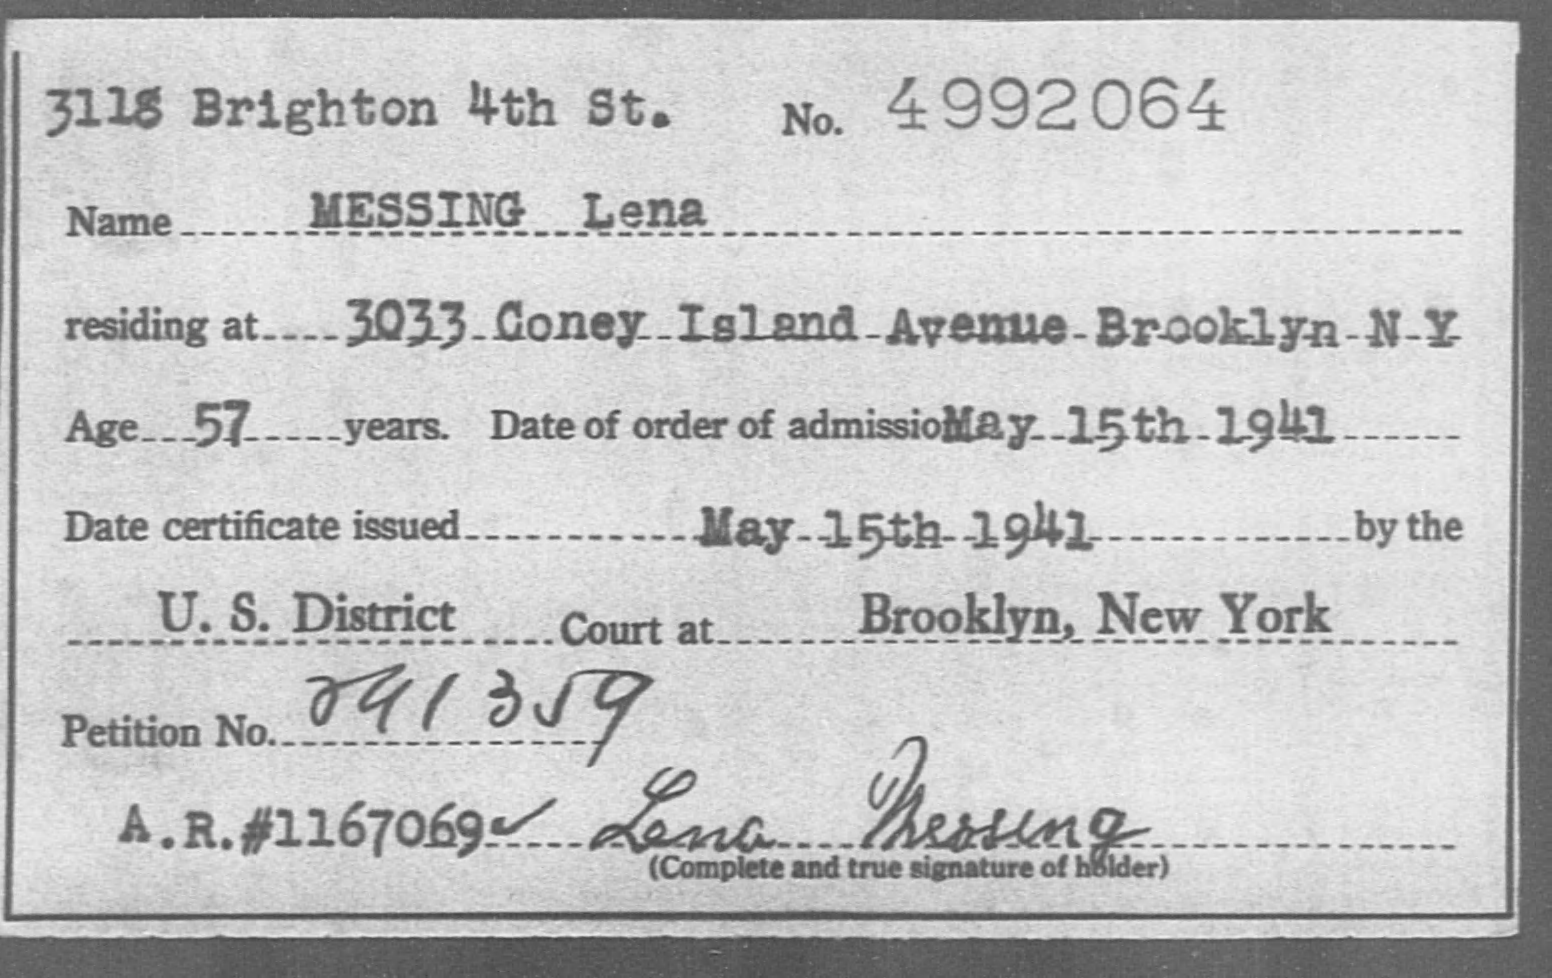 MESSING Lena - Born: [BLANK], Naturalized: 1941